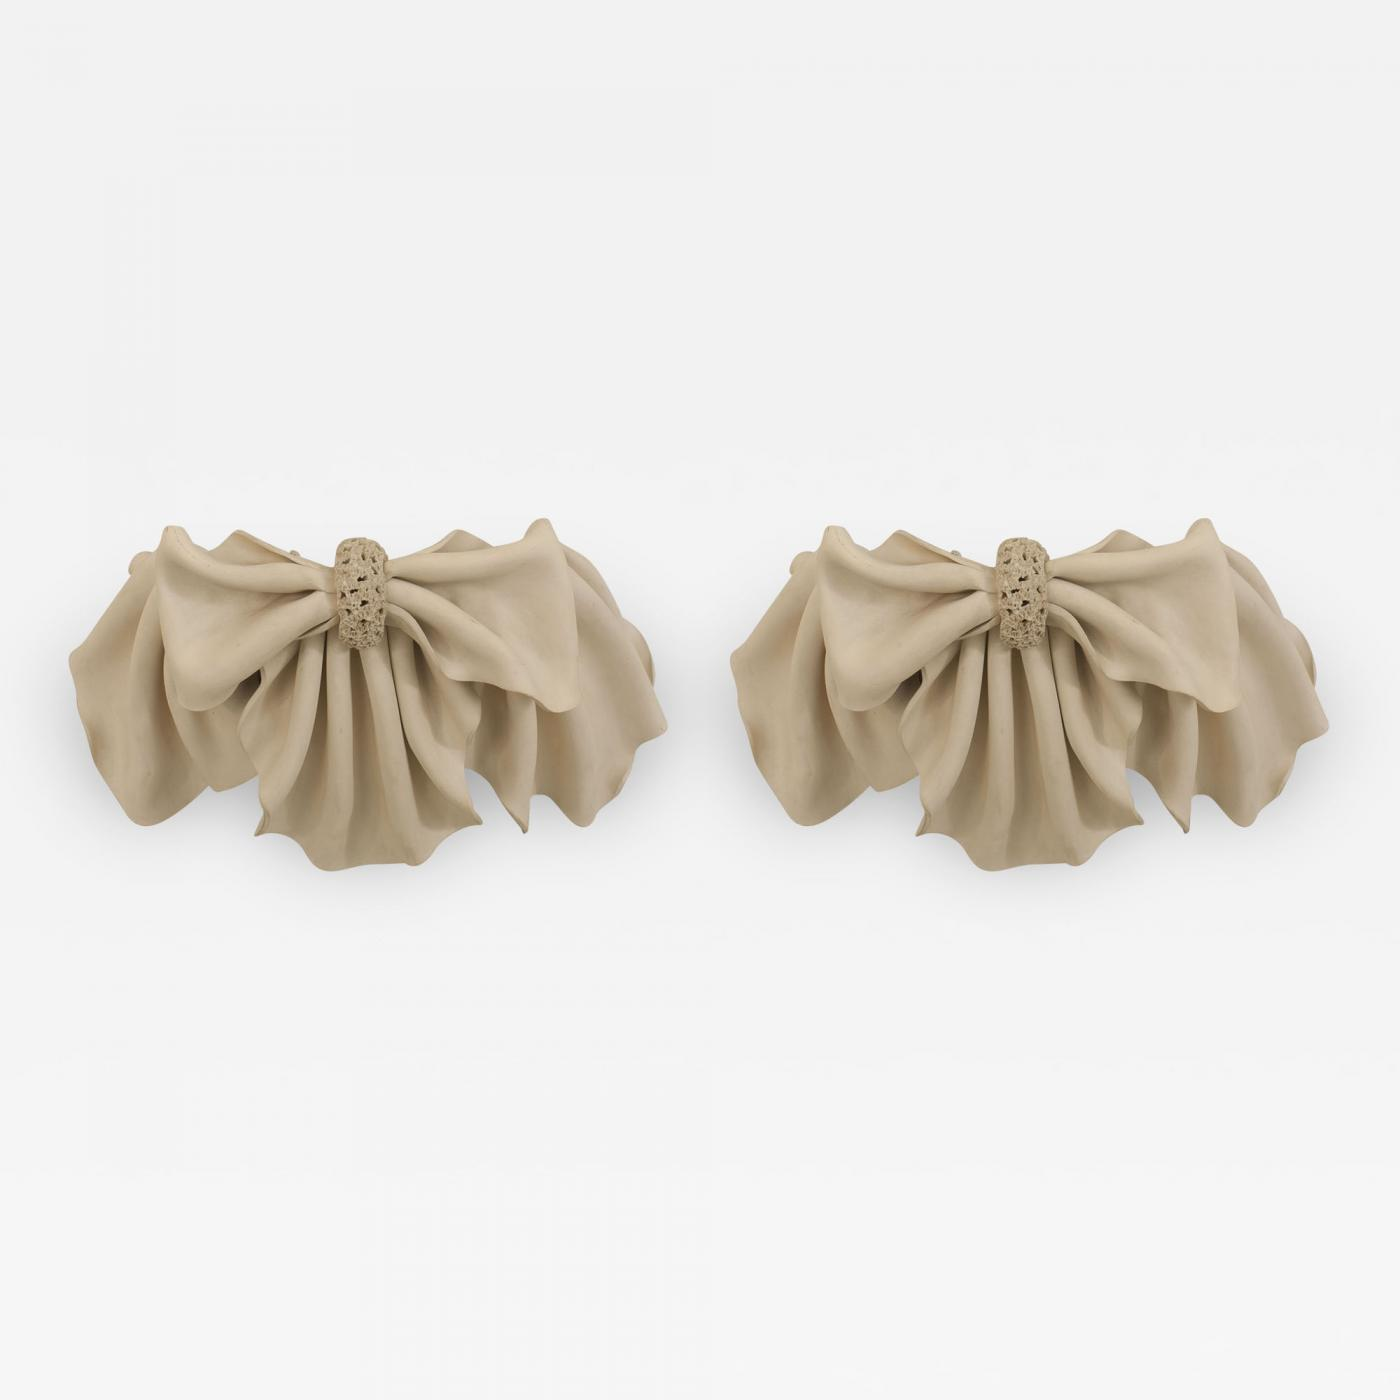 Pair Of French 1940s Beige Plaster Wall Sconces